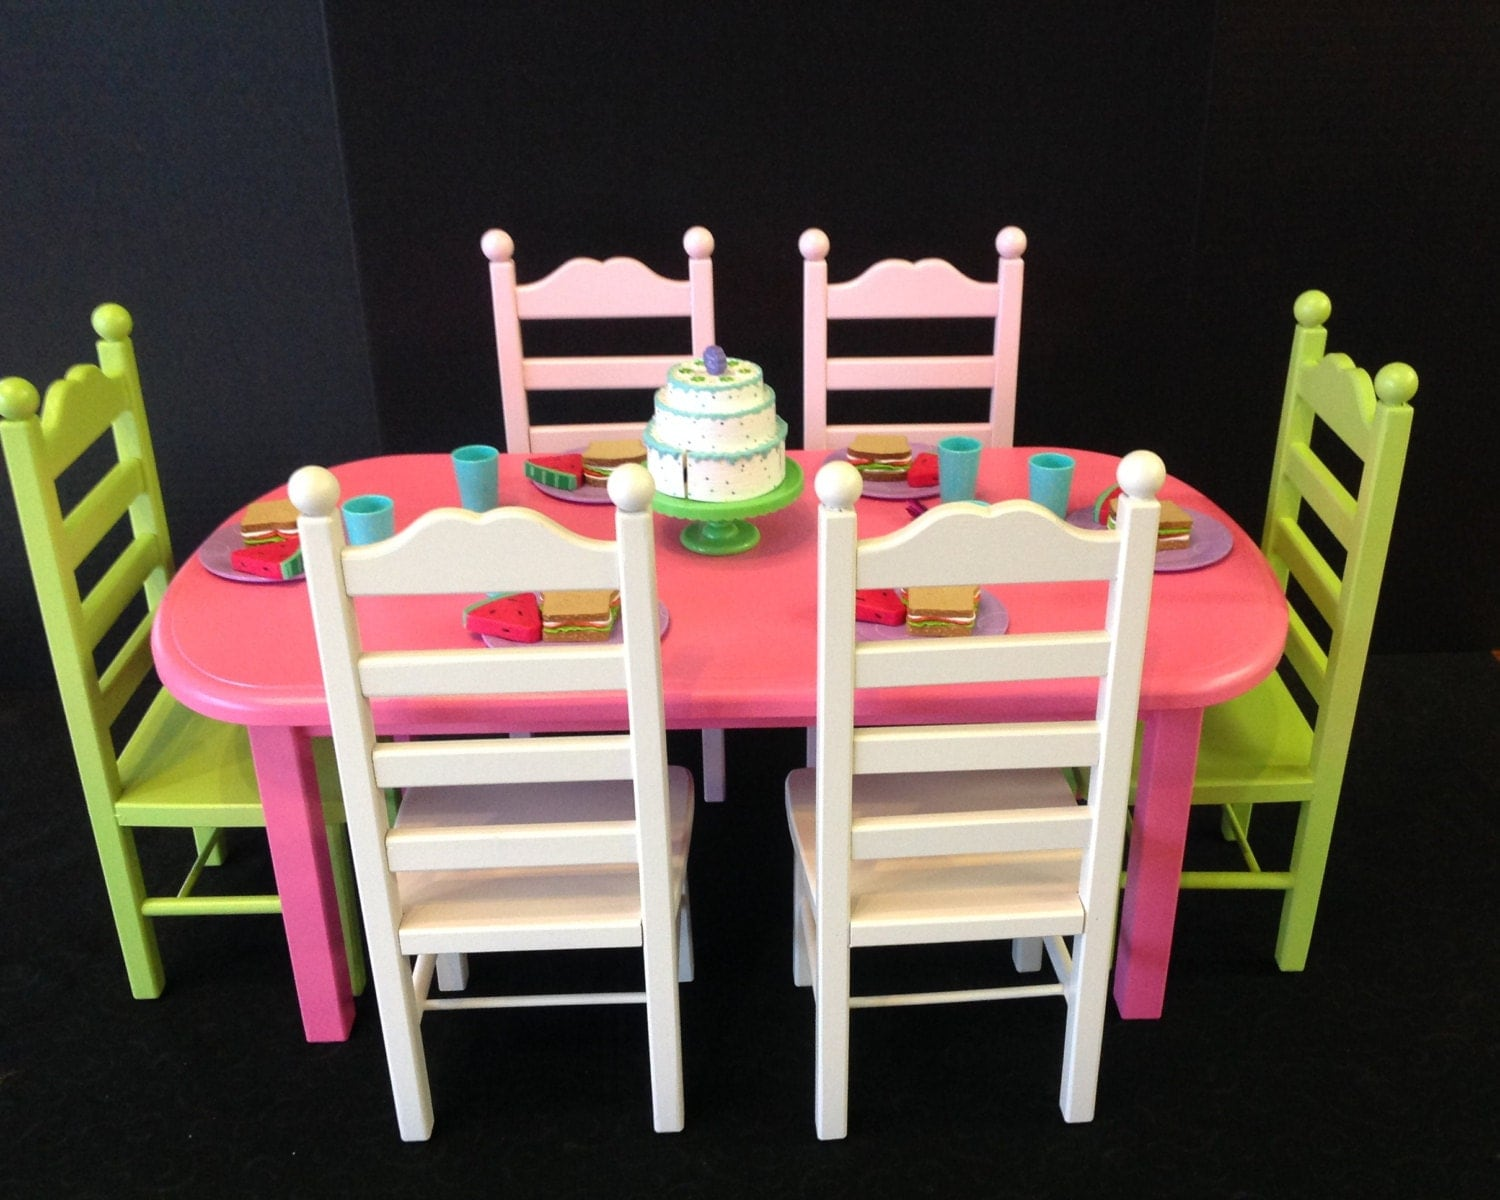 american doll table 6 chair set pink and green. Black Bedroom Furniture Sets. Home Design Ideas